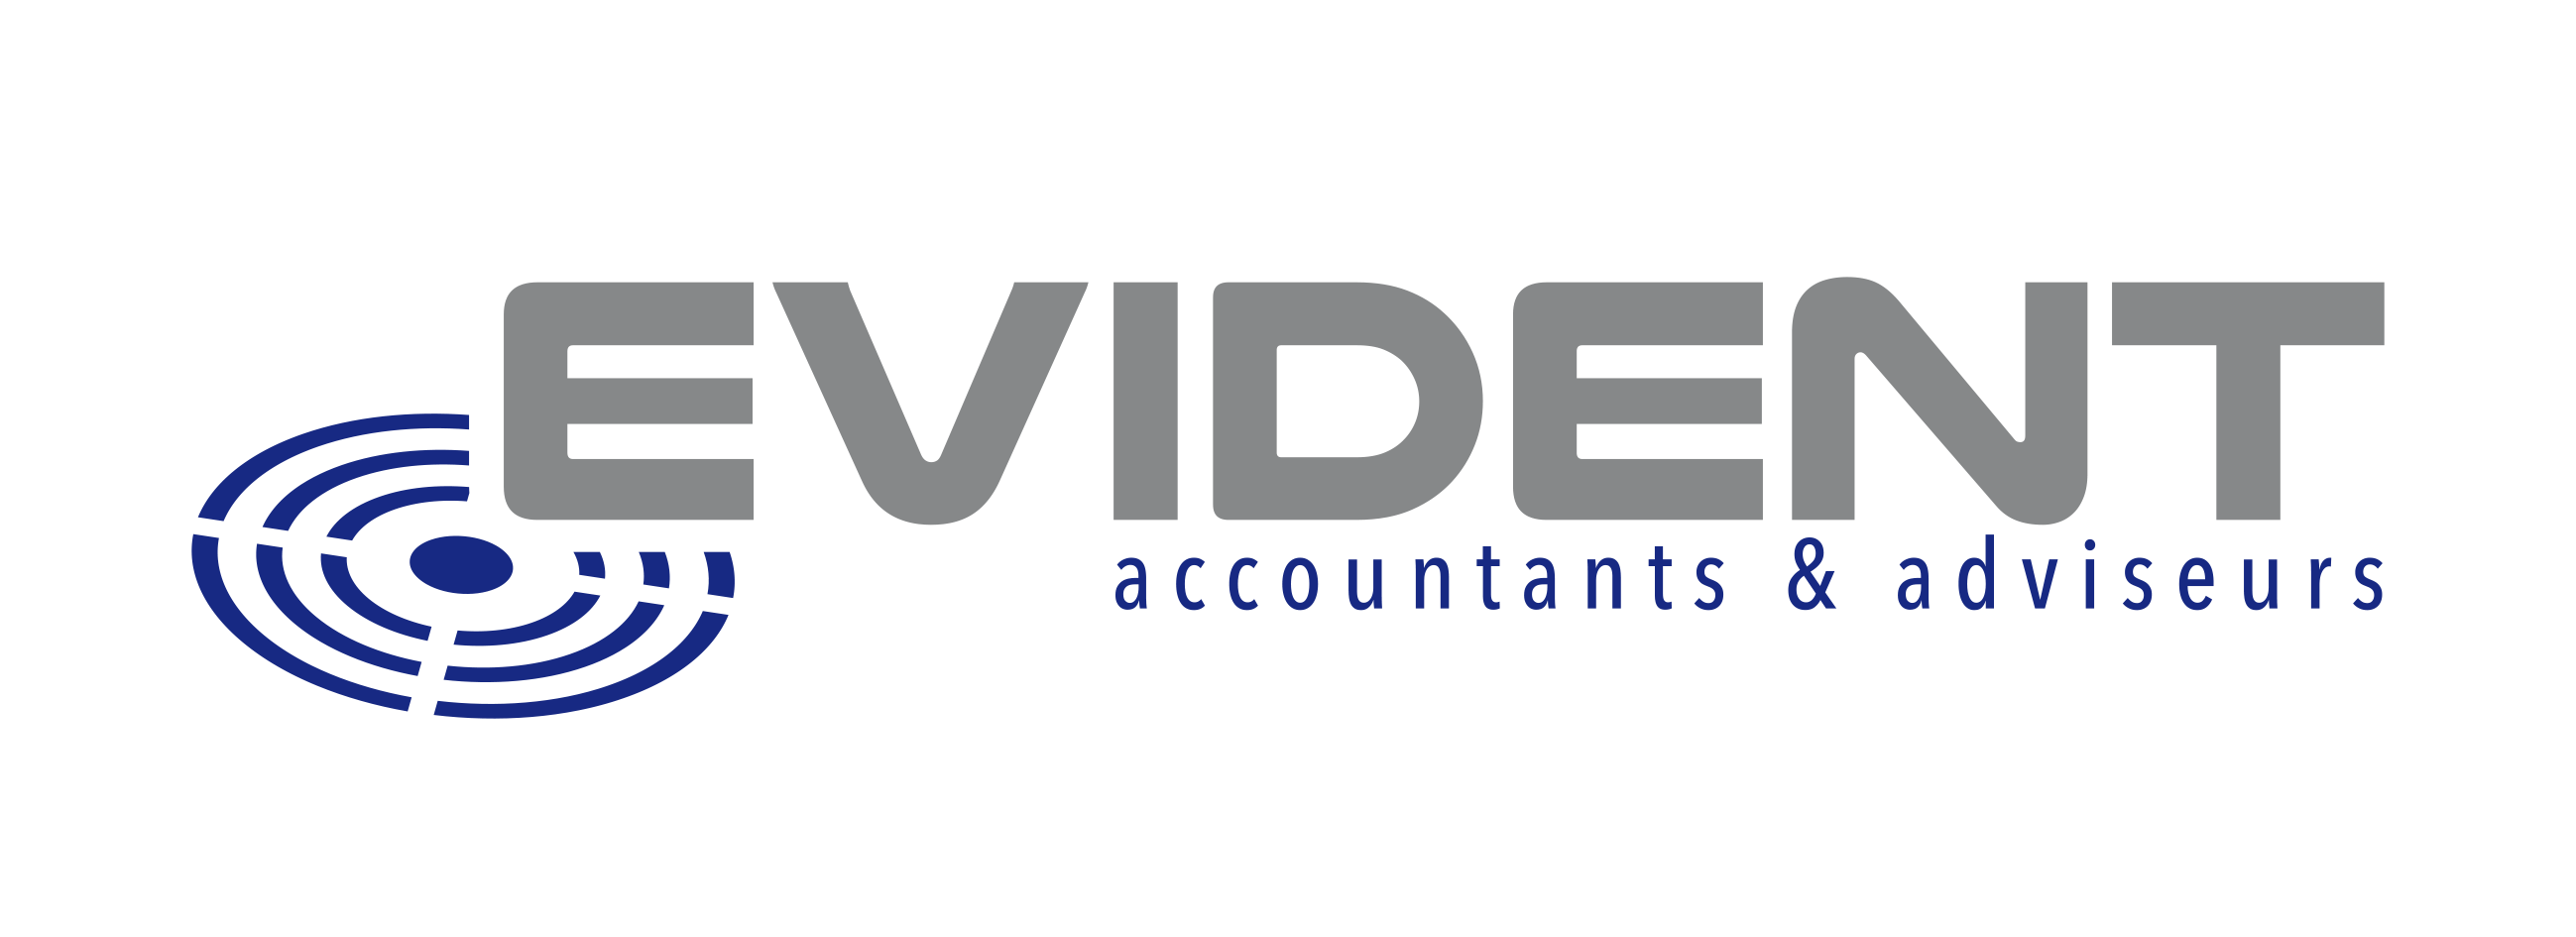 Evident Accountants & Adviseurs